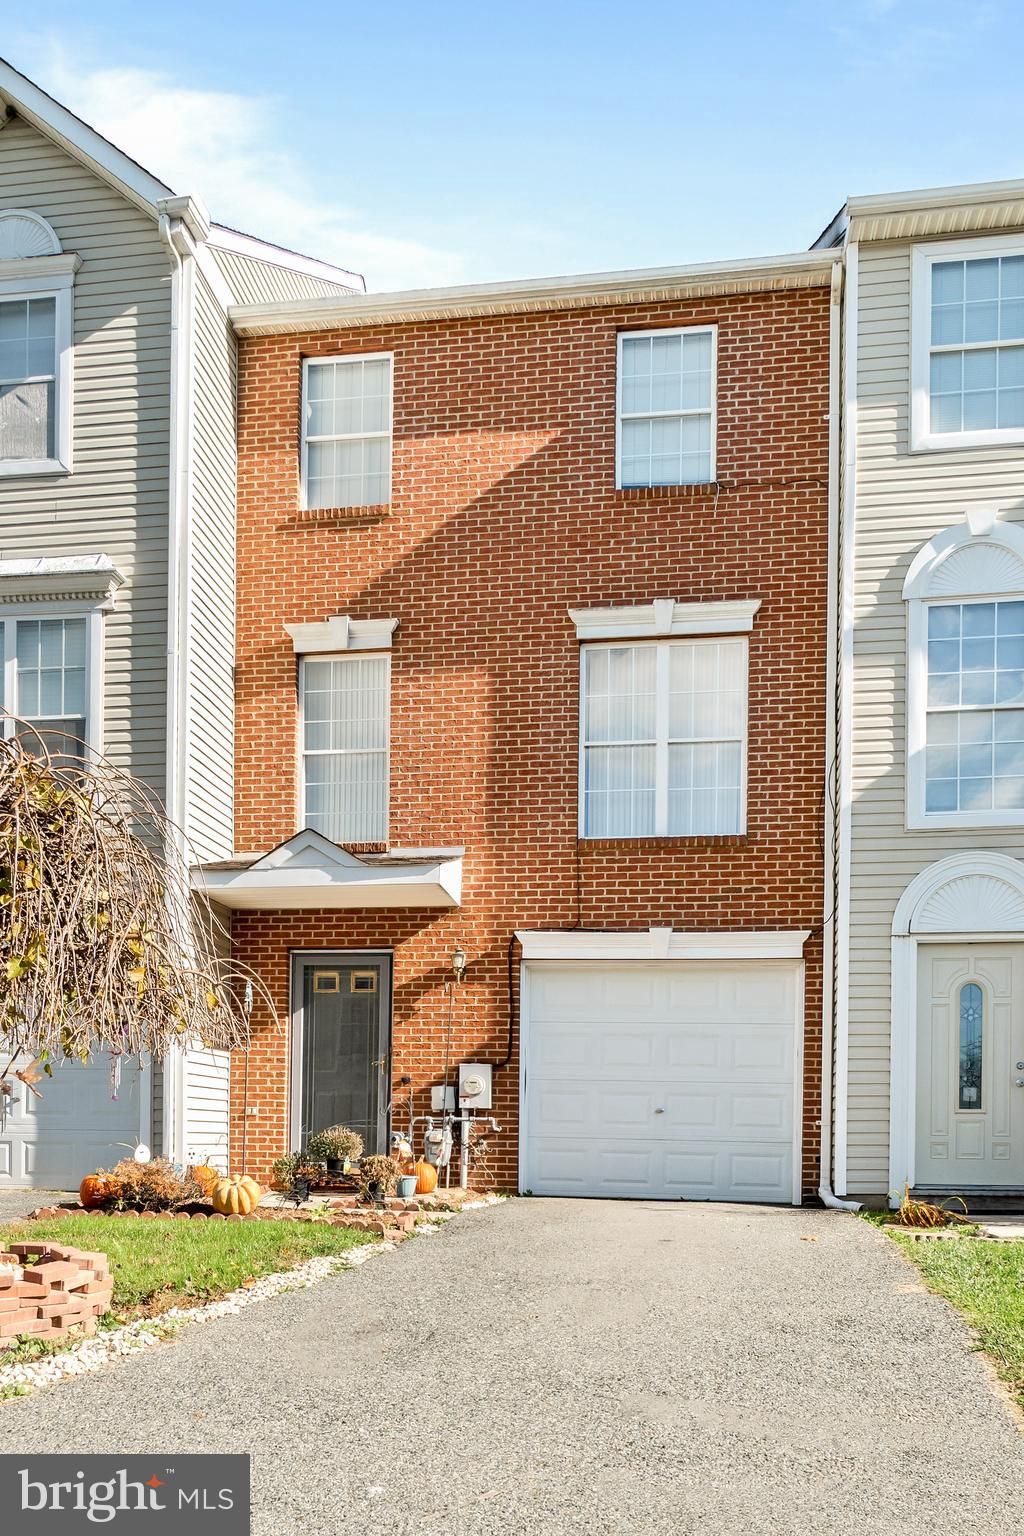 Welcome home to this brick front 2 bedroom, 2.5 bath townhome located in persimmons creek that backs